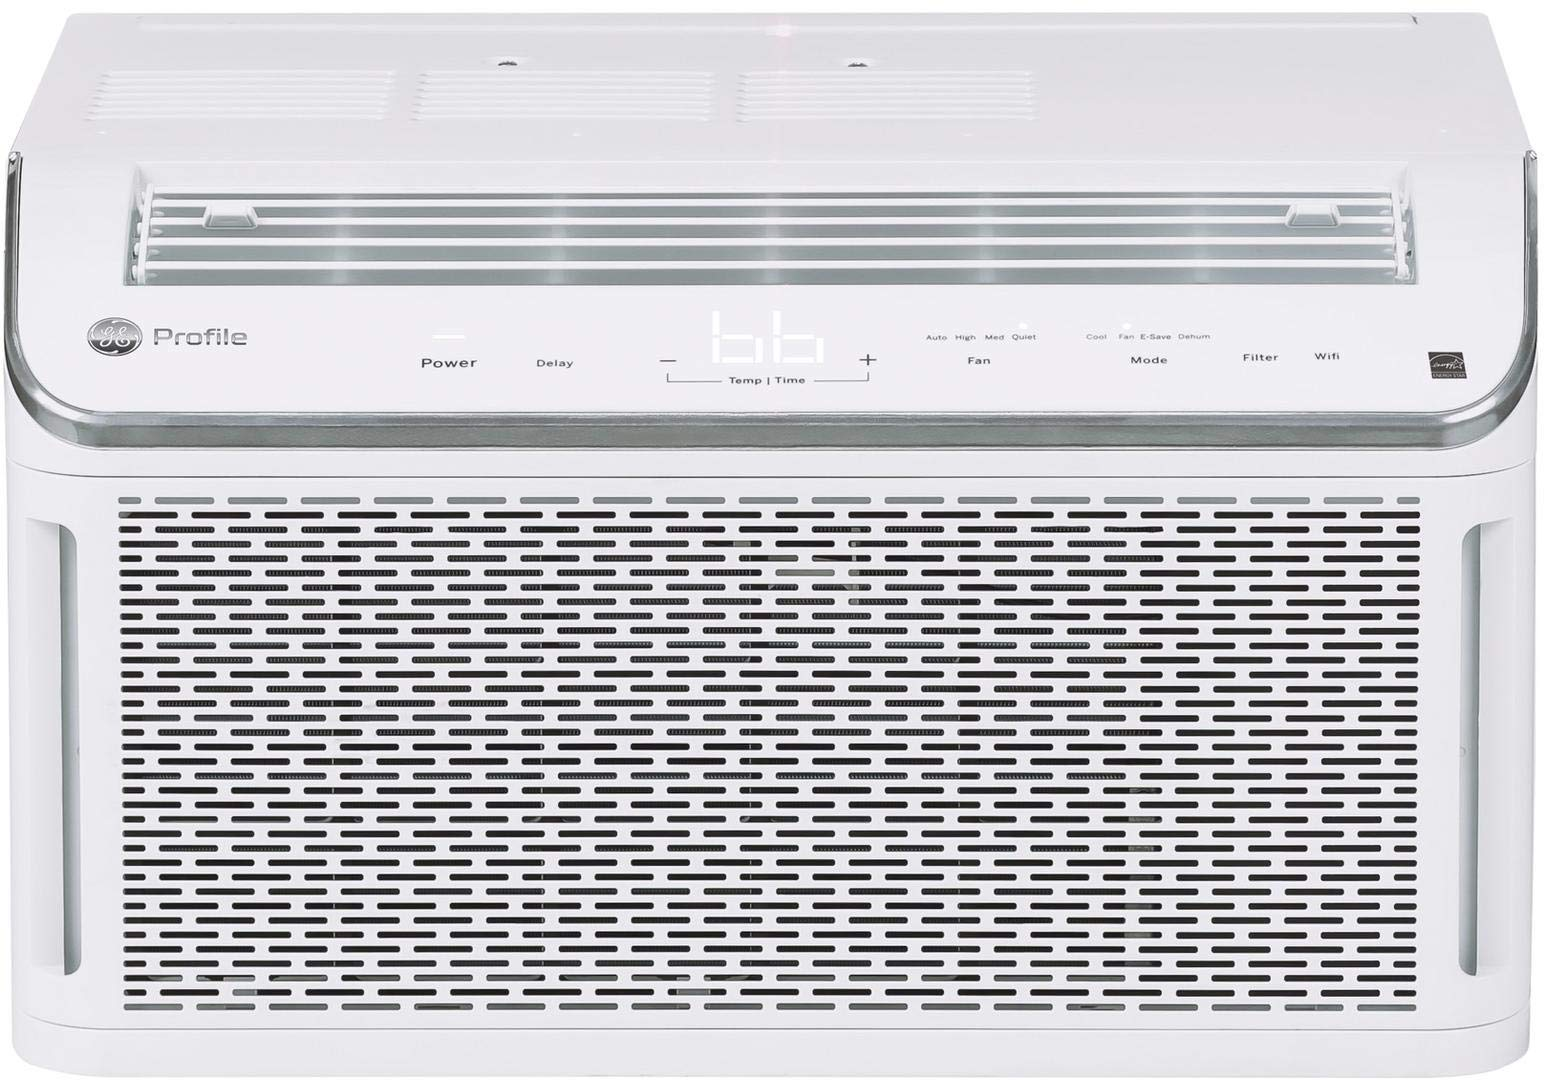 GE Profile PHC06LY 22'' Window Air Conditioner Energy Star 6,150 BTU 115-Volt with WiFi and Remote control in White by GE